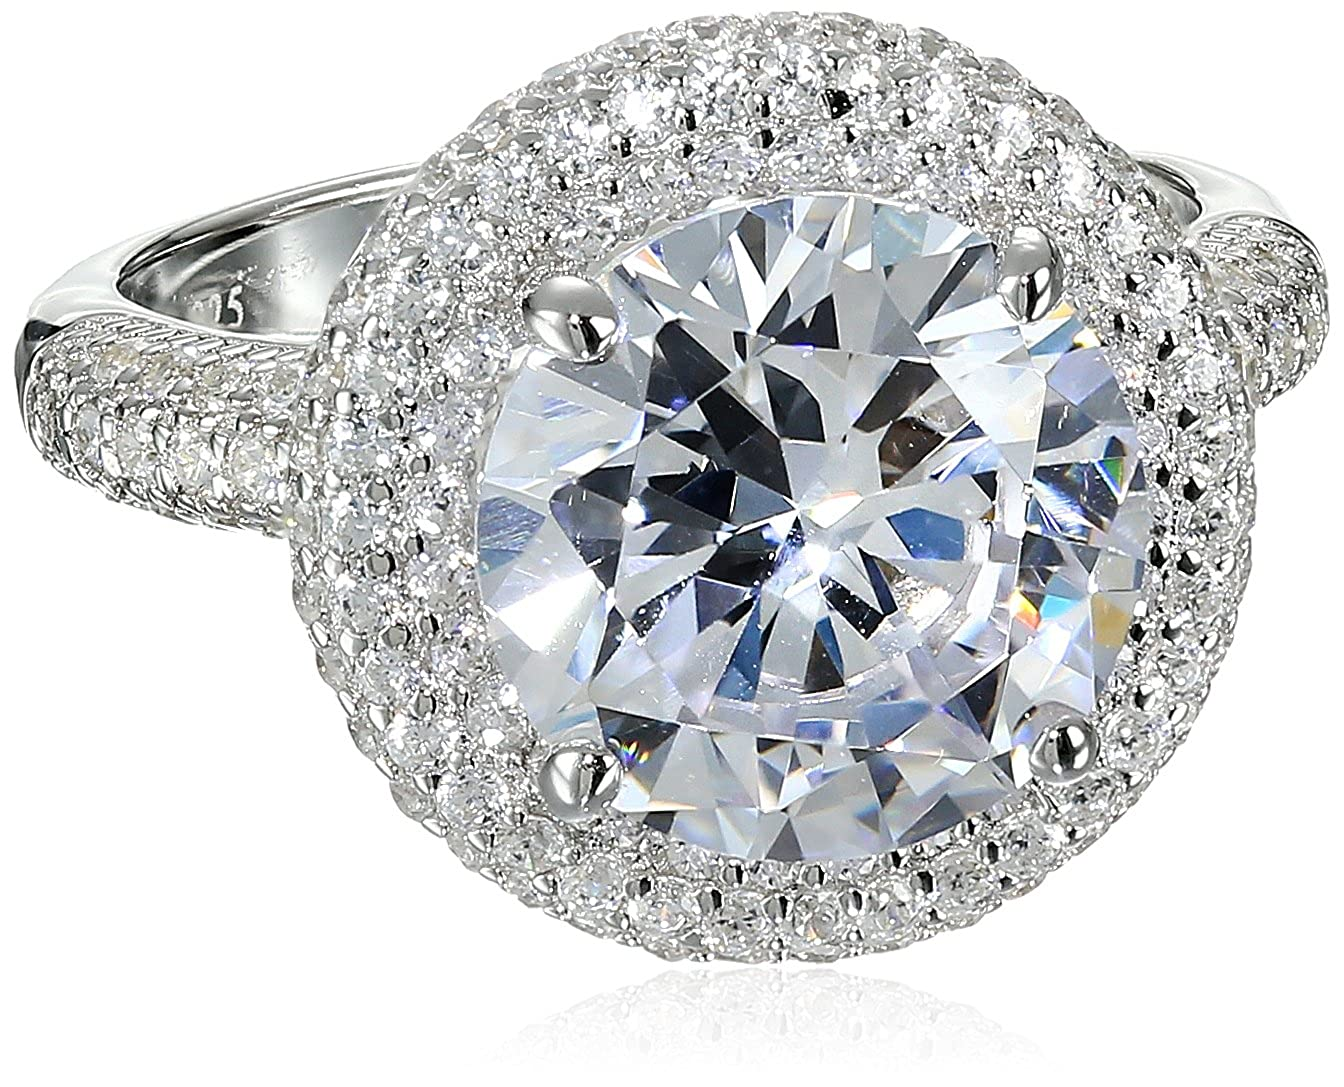 Charles Winston S Silver, Cubic Zirconia 11mm Round CZ Ring, 5.00 ct. Center, 6.30 ct. tw. RG5008-CZ-6-Parent